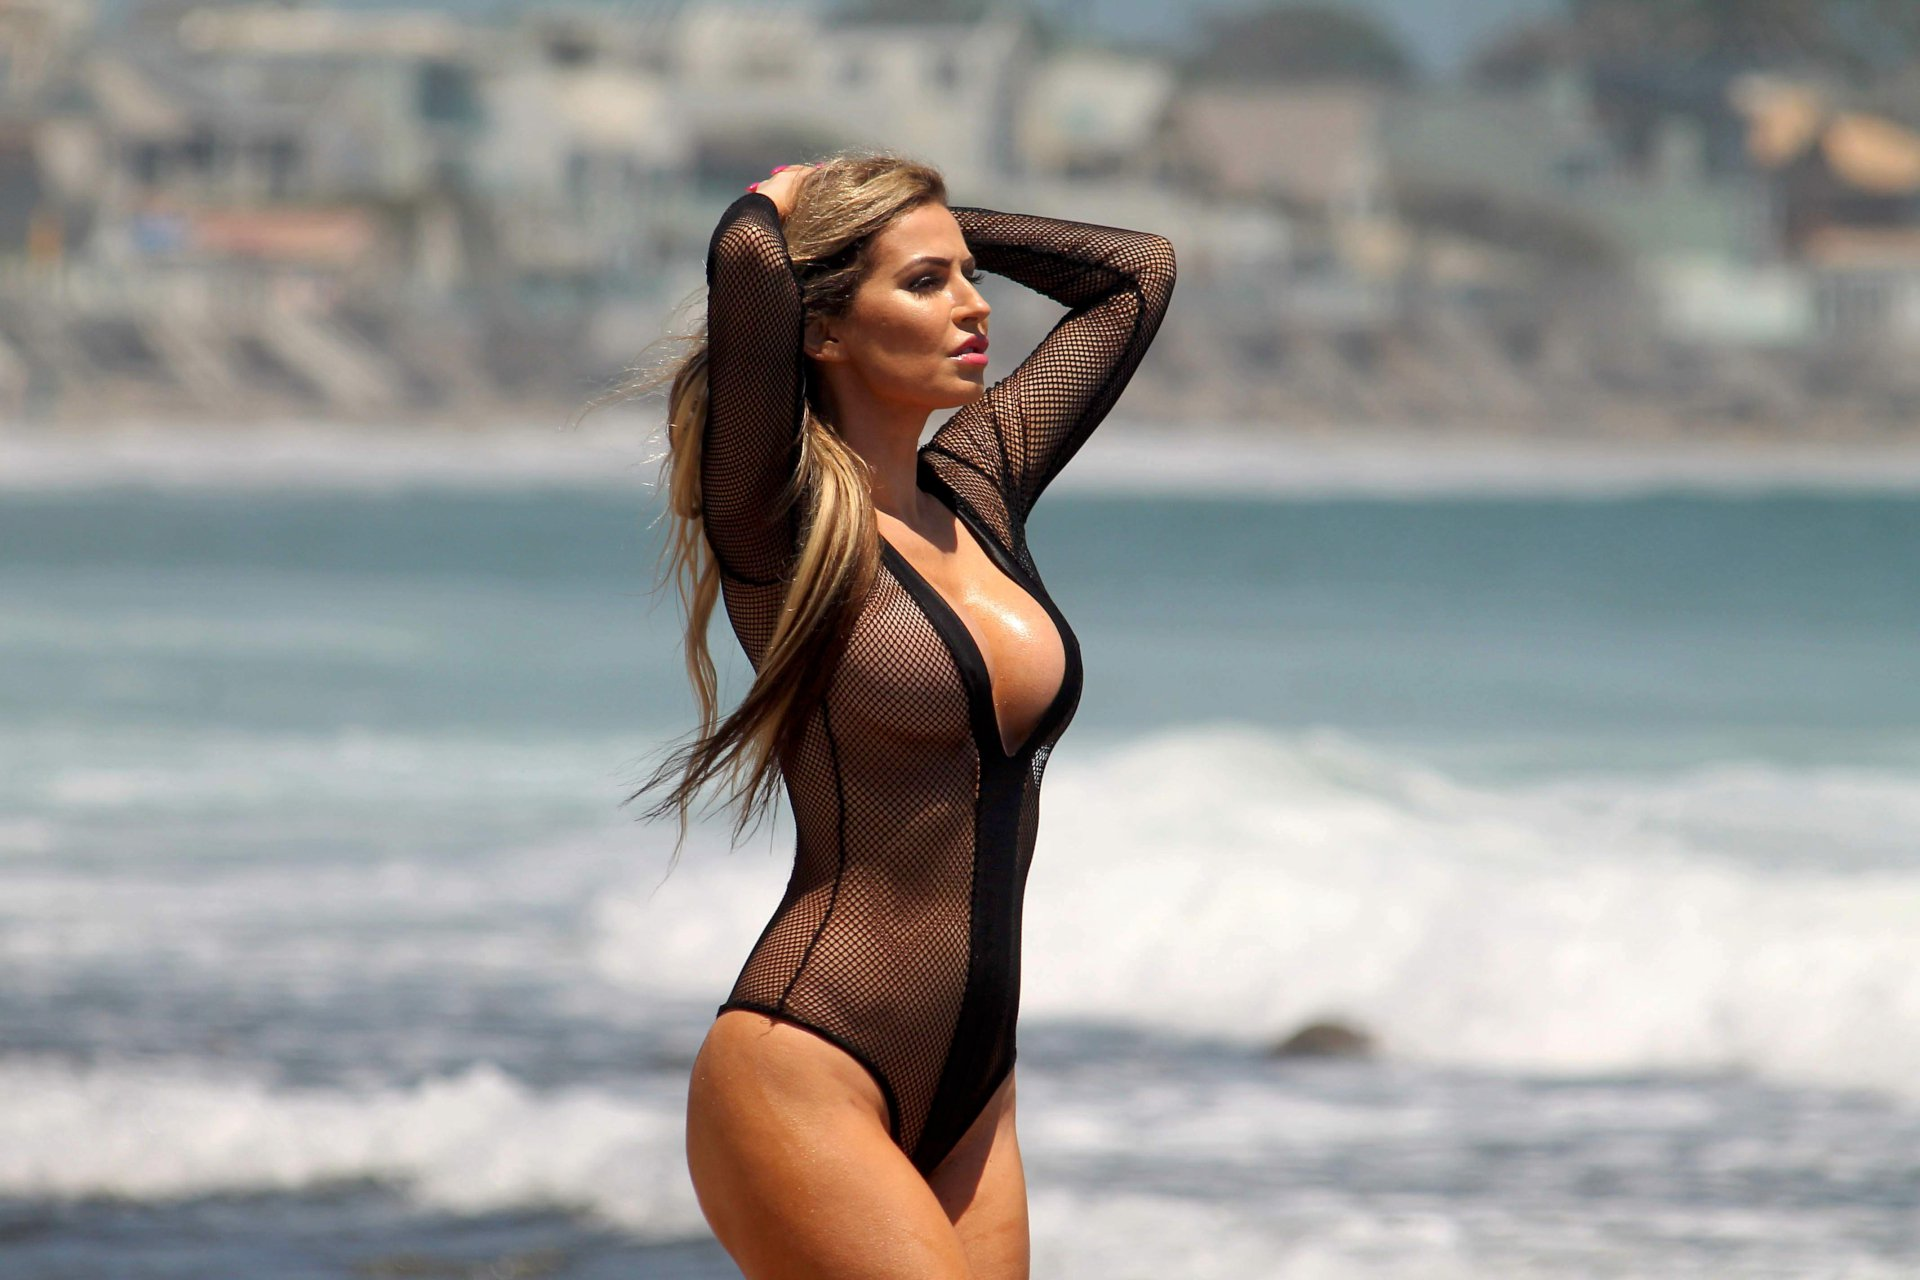 Kara del toro sexy 27 Photos pictures